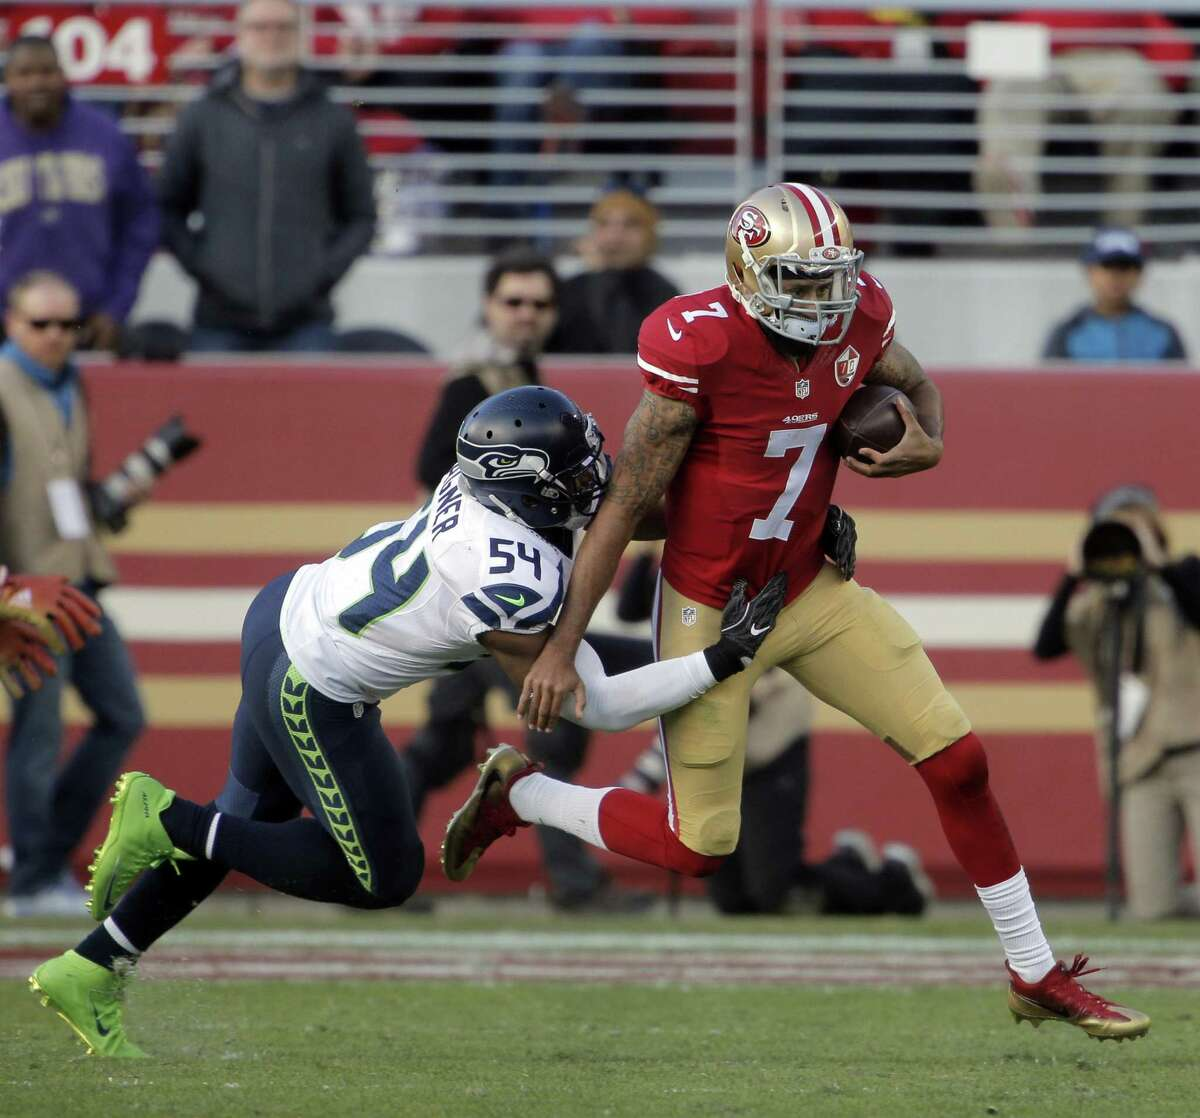 Colin Kaepernick (7) scrambles under pressure from Bobby Wagner (54) in the first half as the San Francisco 49ers played the Seattle Seahawks at Levi's Stadium in Santa Clara, Calif., on Sunday, January 1, 2017.